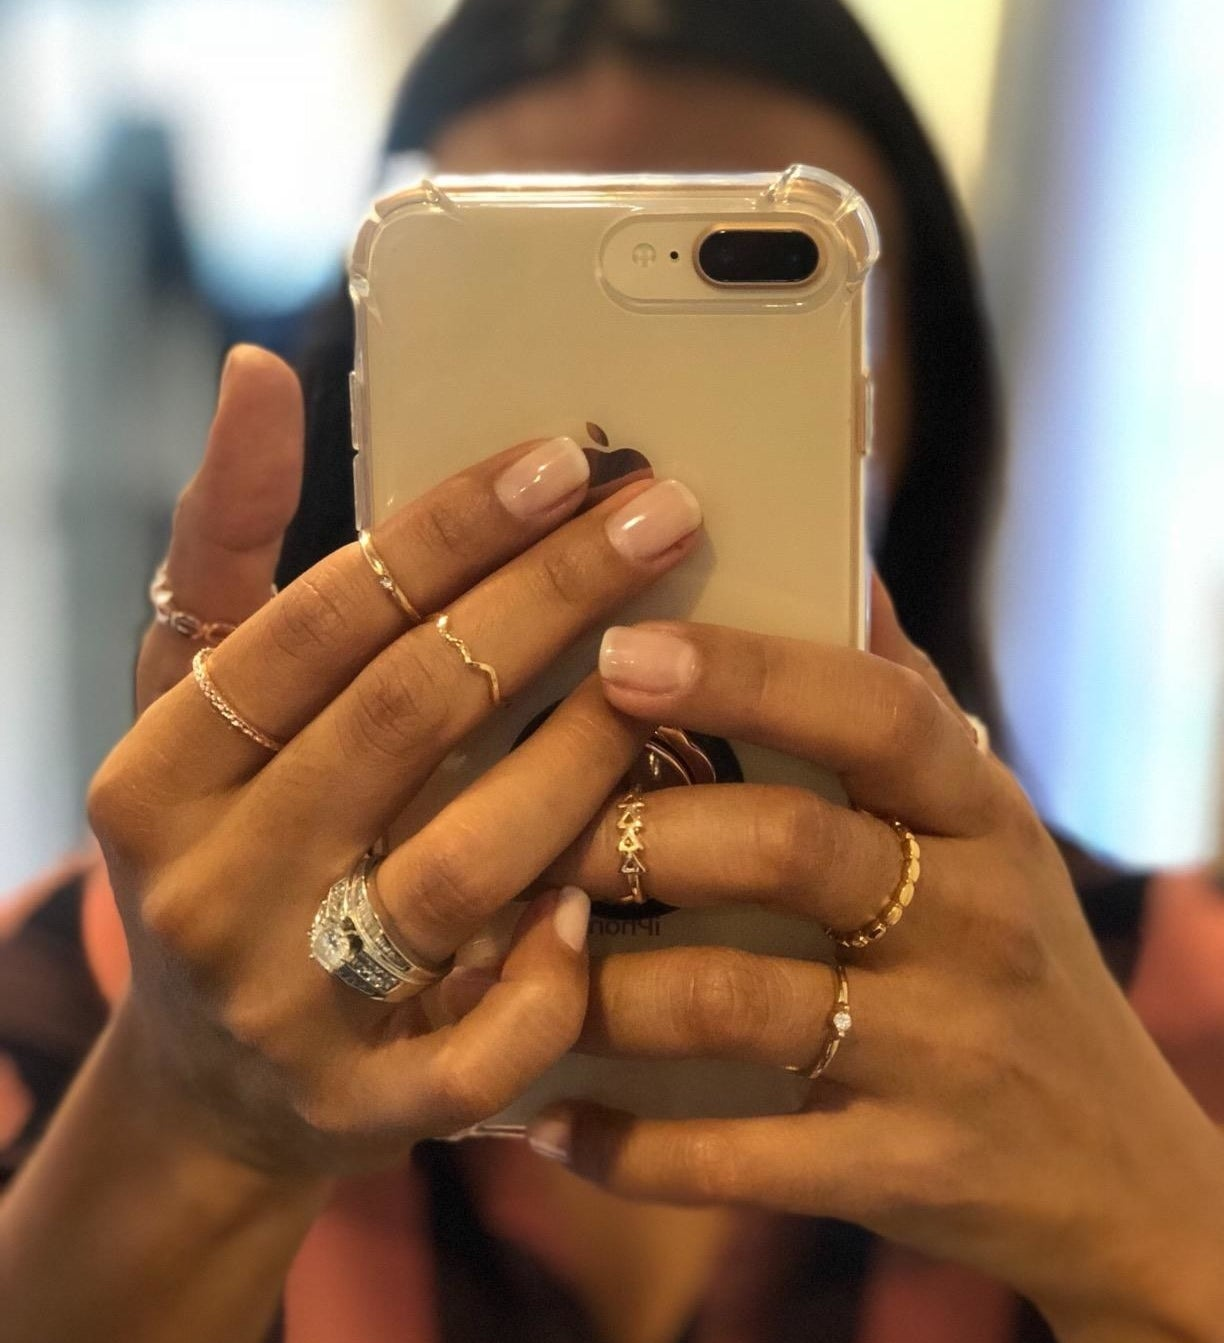 Reviewer is holding their camera up to a mirror to show off the stacked rings on their hands